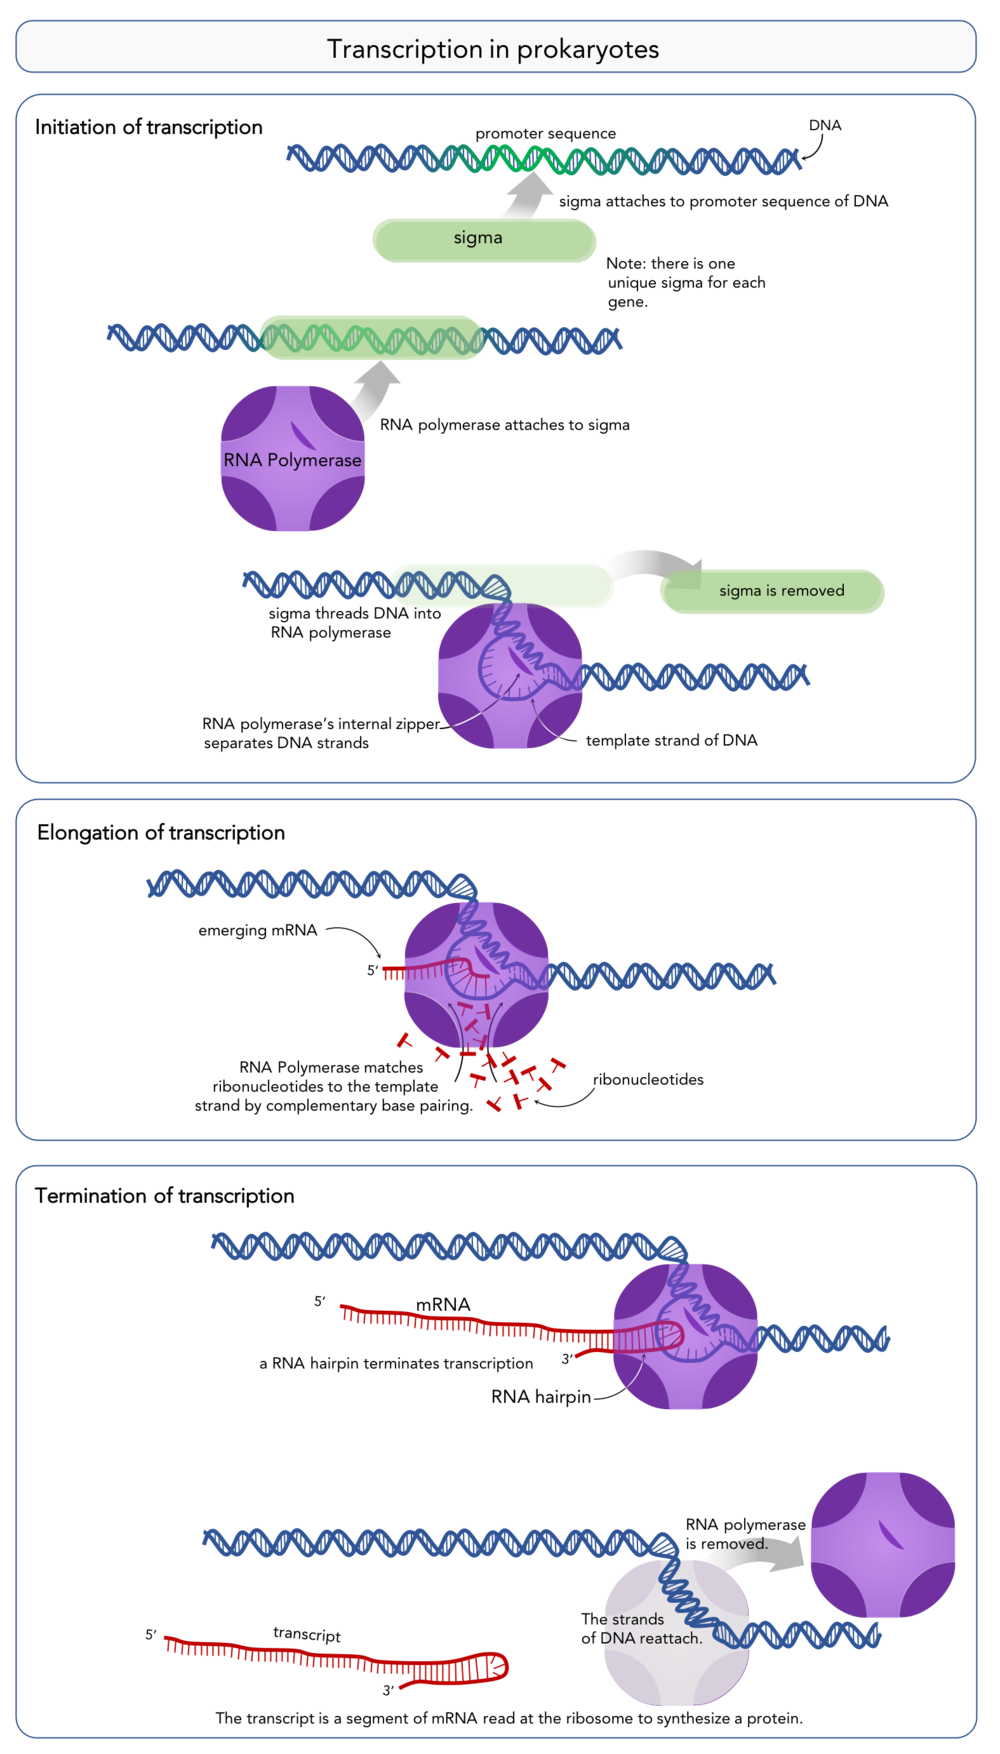 Figure 9.  Steps of transcription in prokaryotes.